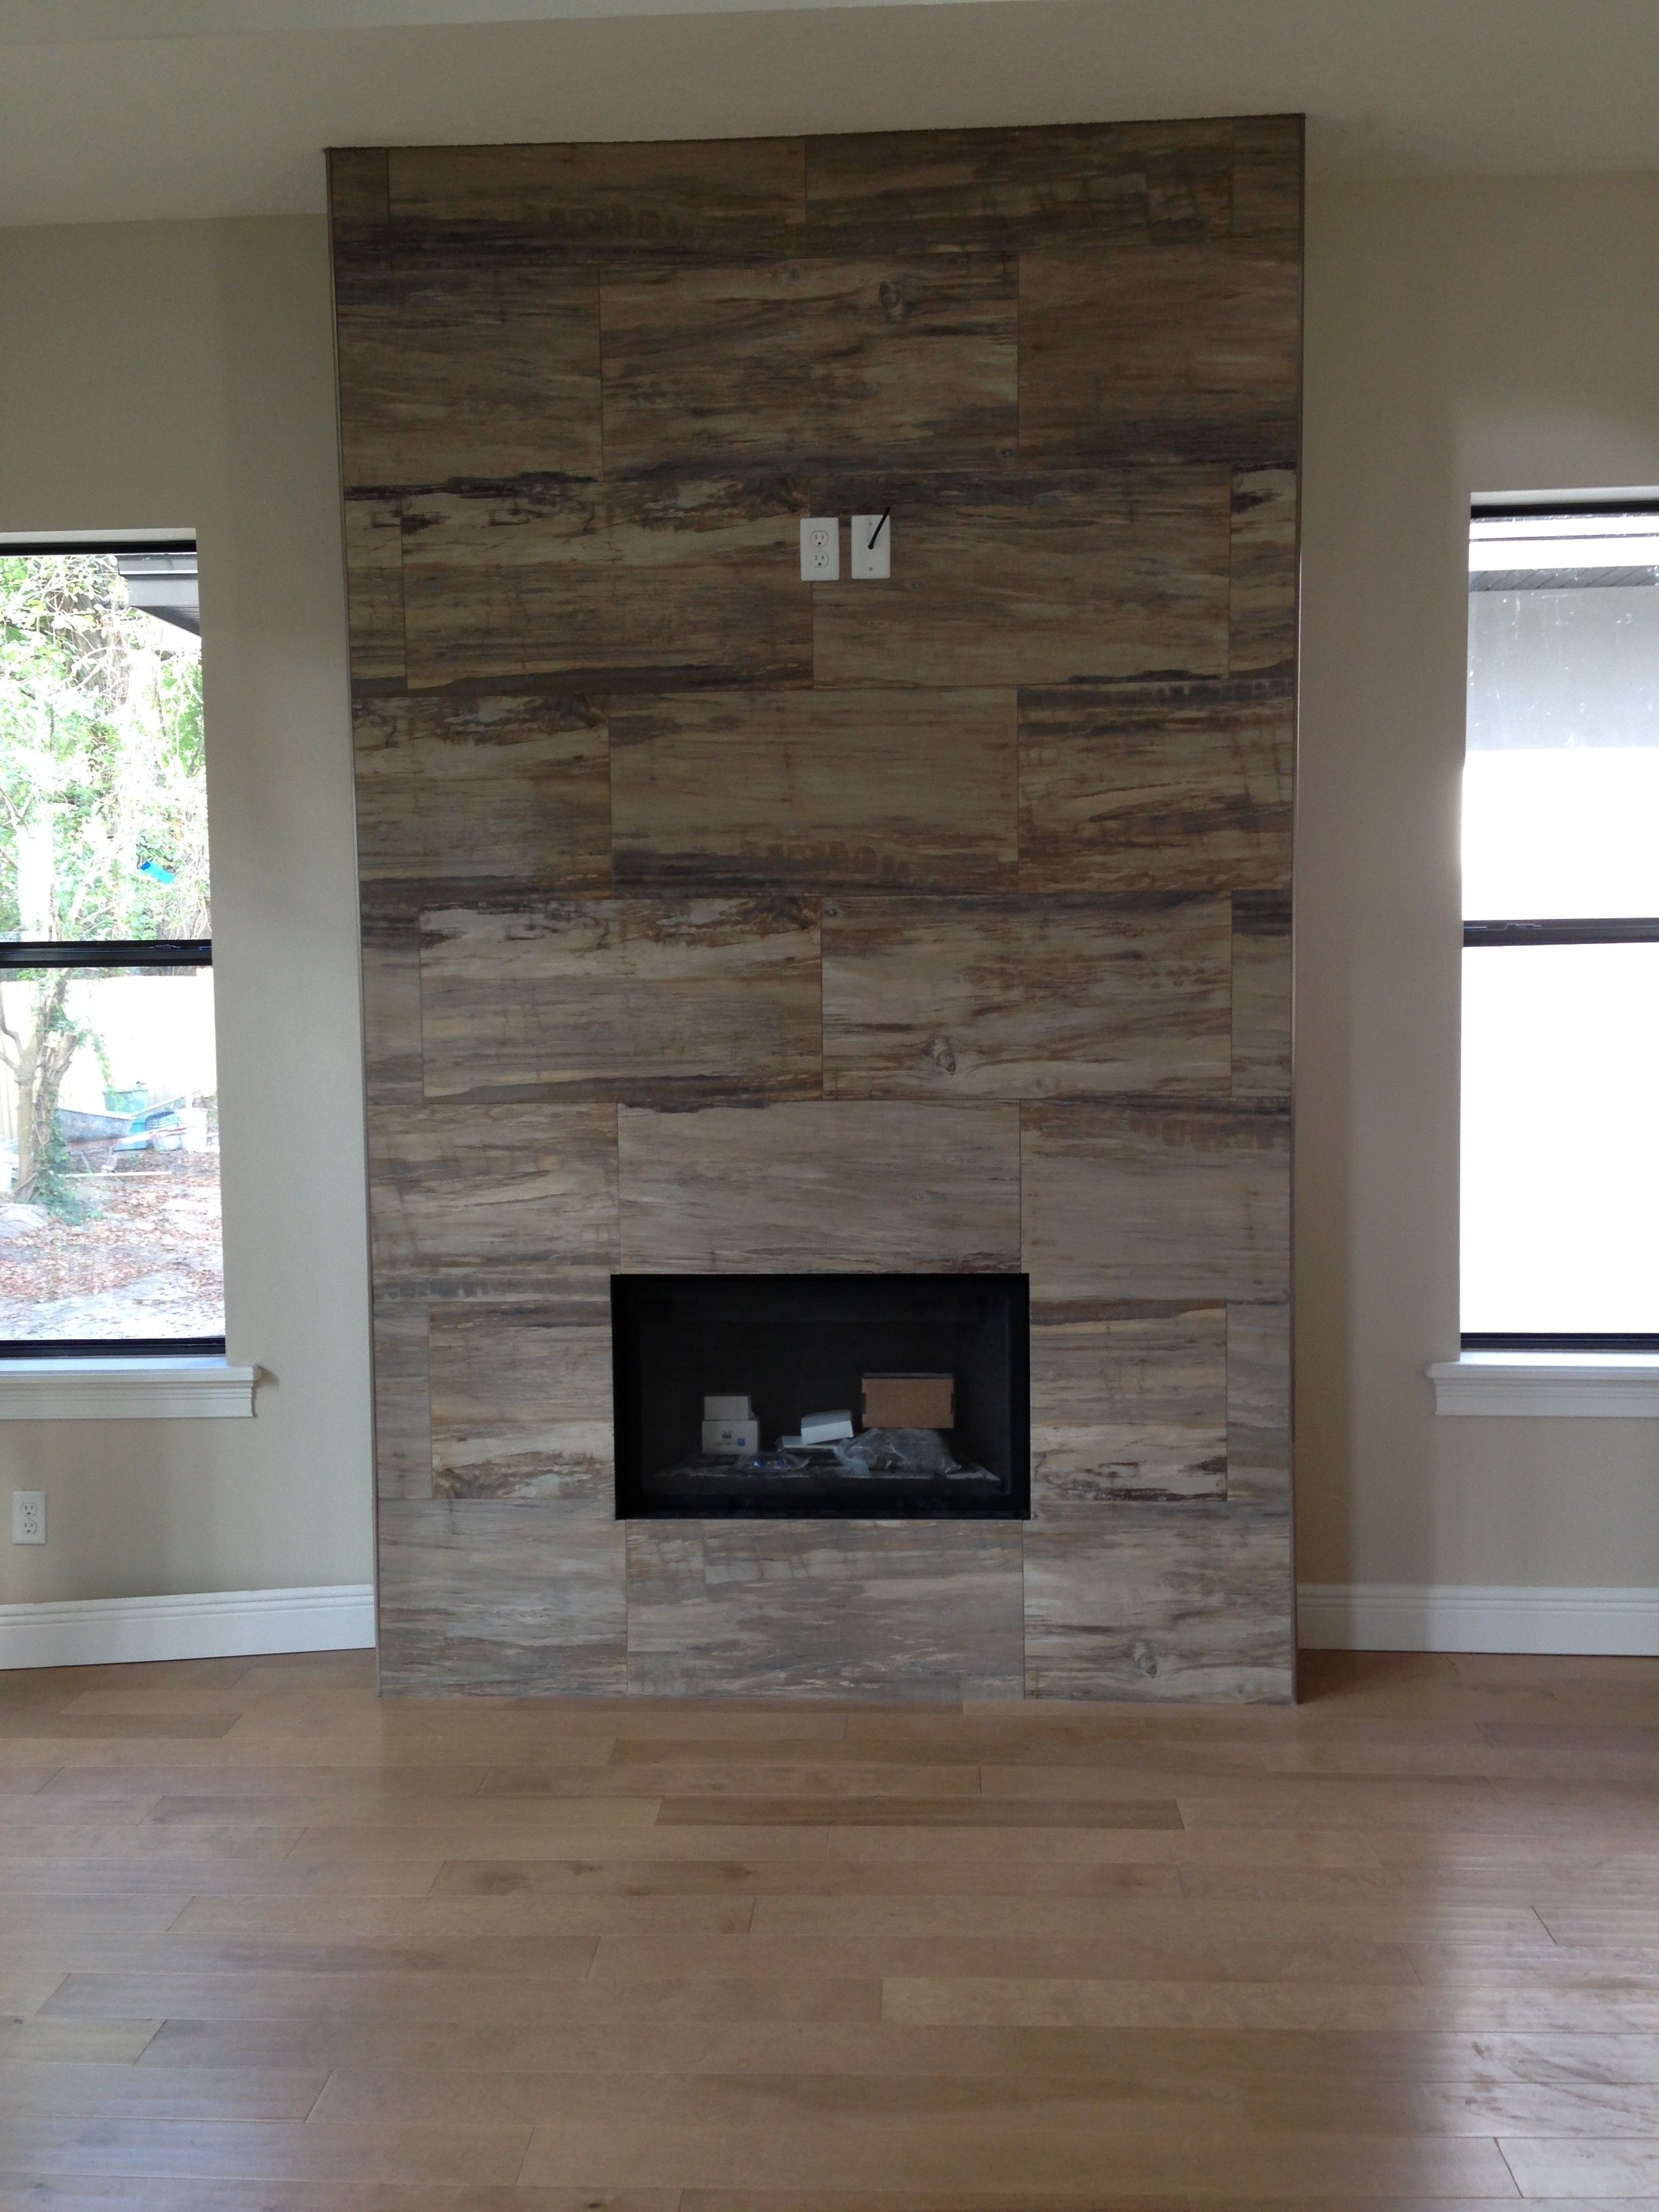 Tile Fireplace Mantels modern brick fireplace; porcelain tile clad, solid surface slab on